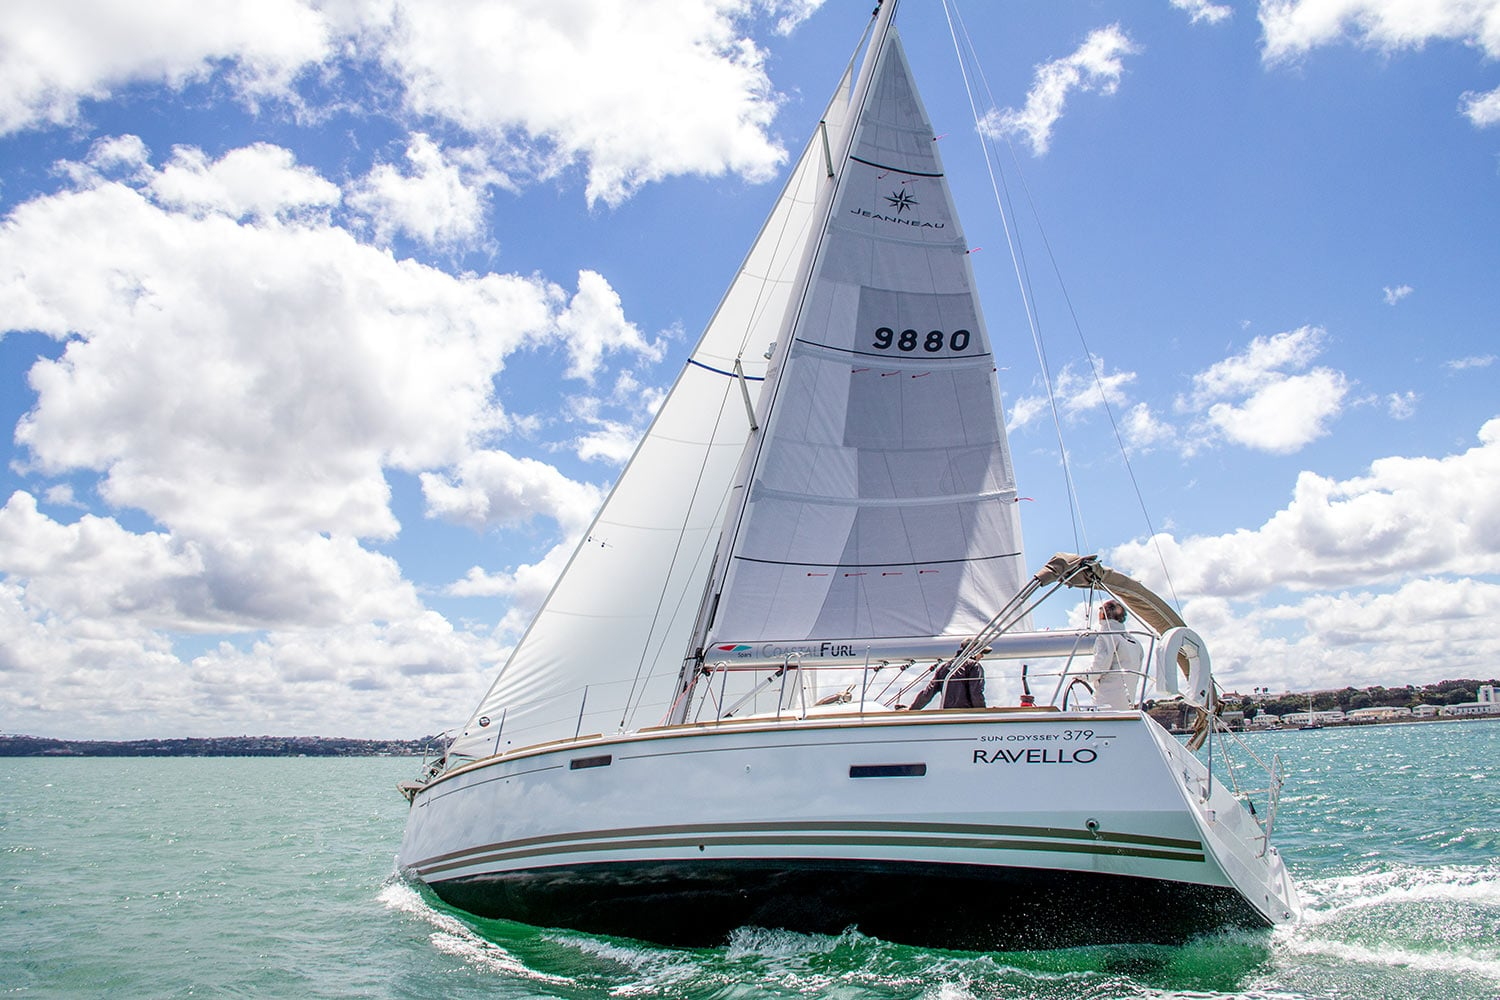 nz_yachting.jpg